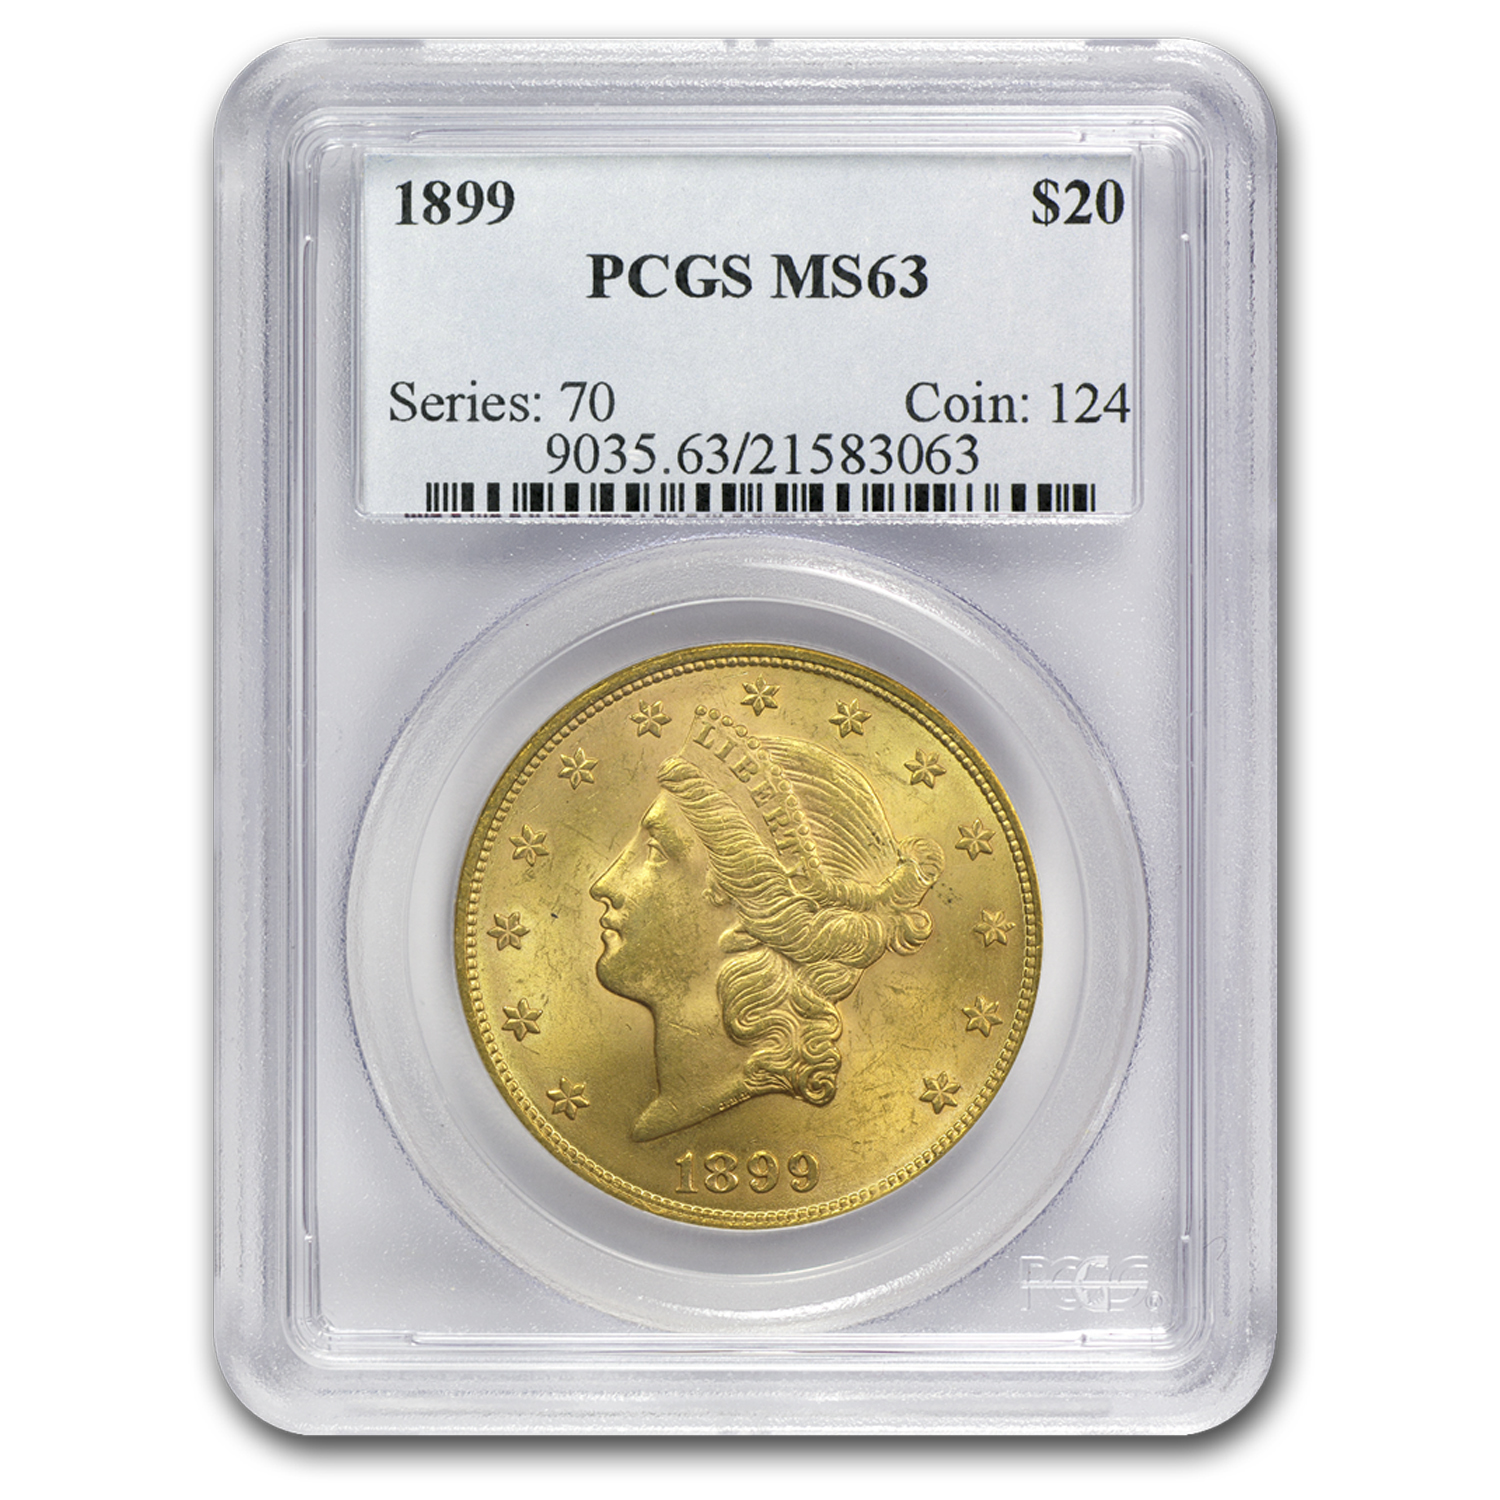 $20 Gold Liberty Double Eagle MS-63 PCGS (PRE 1900)